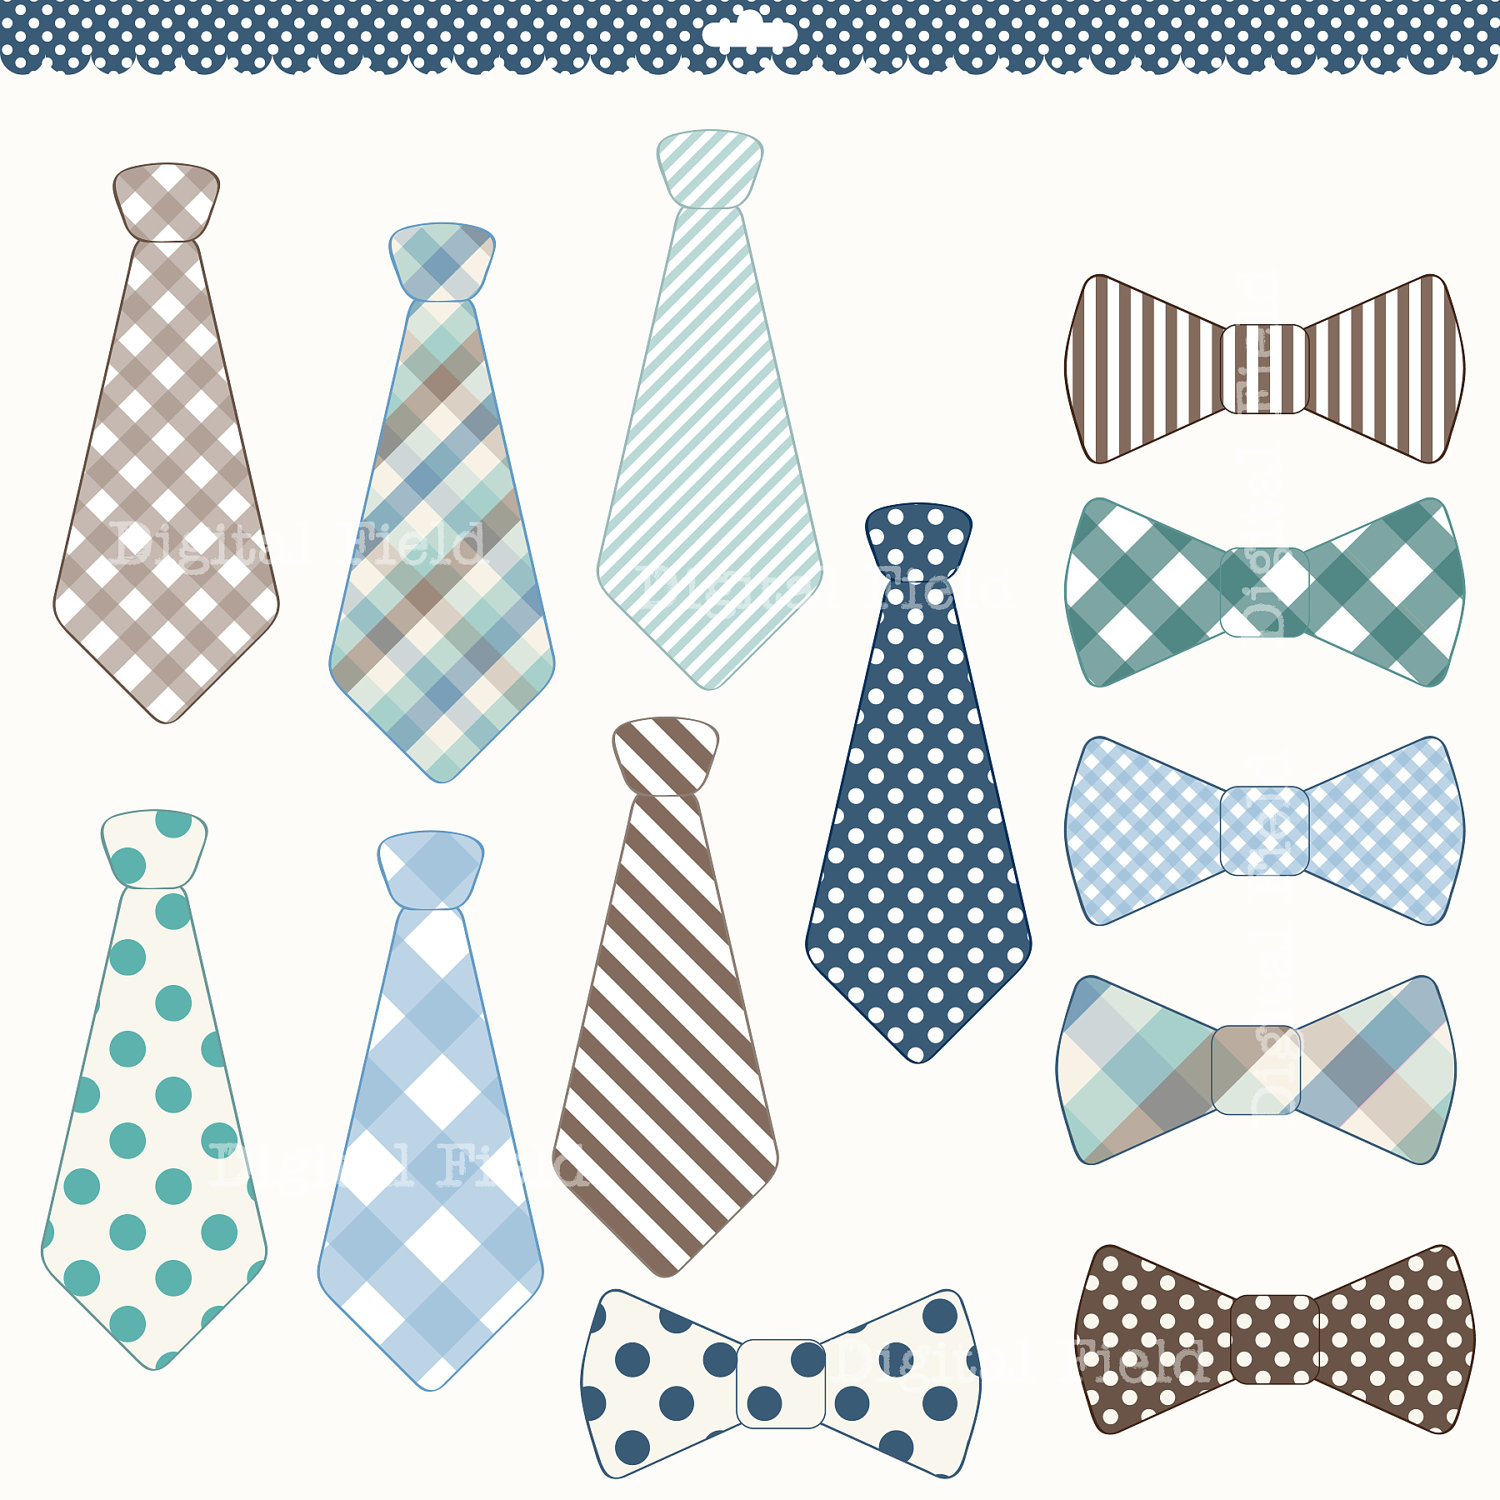 Blue and green chevron bow tie clipart svg black and white download Free Bow Tie Cliparts, Download Free Clip Art, Free Clip Art ... svg black and white download